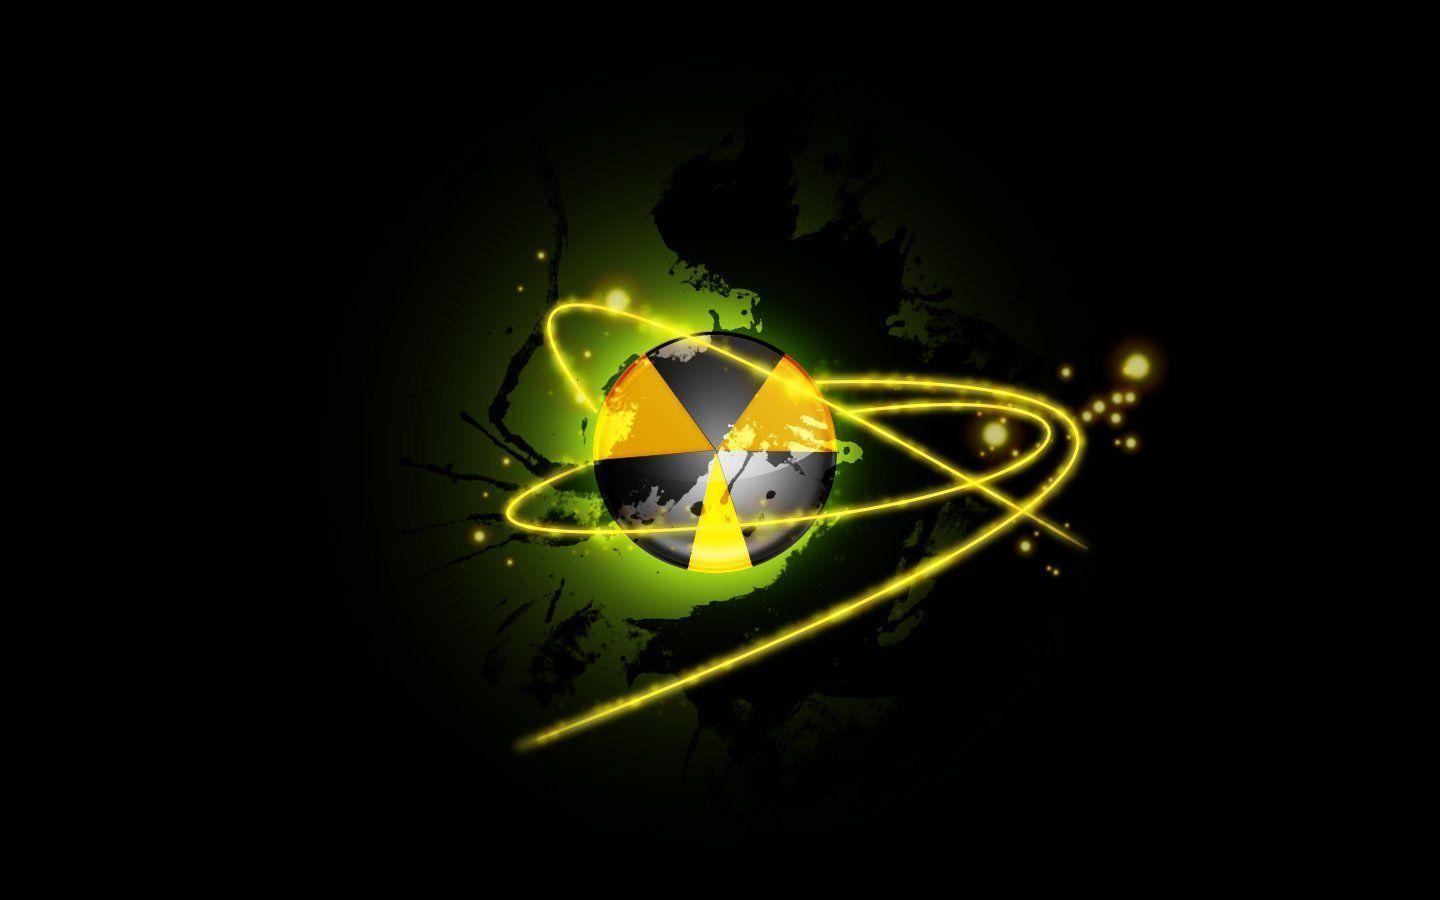 Nuke Symbol Wallpapers Image & Pictures